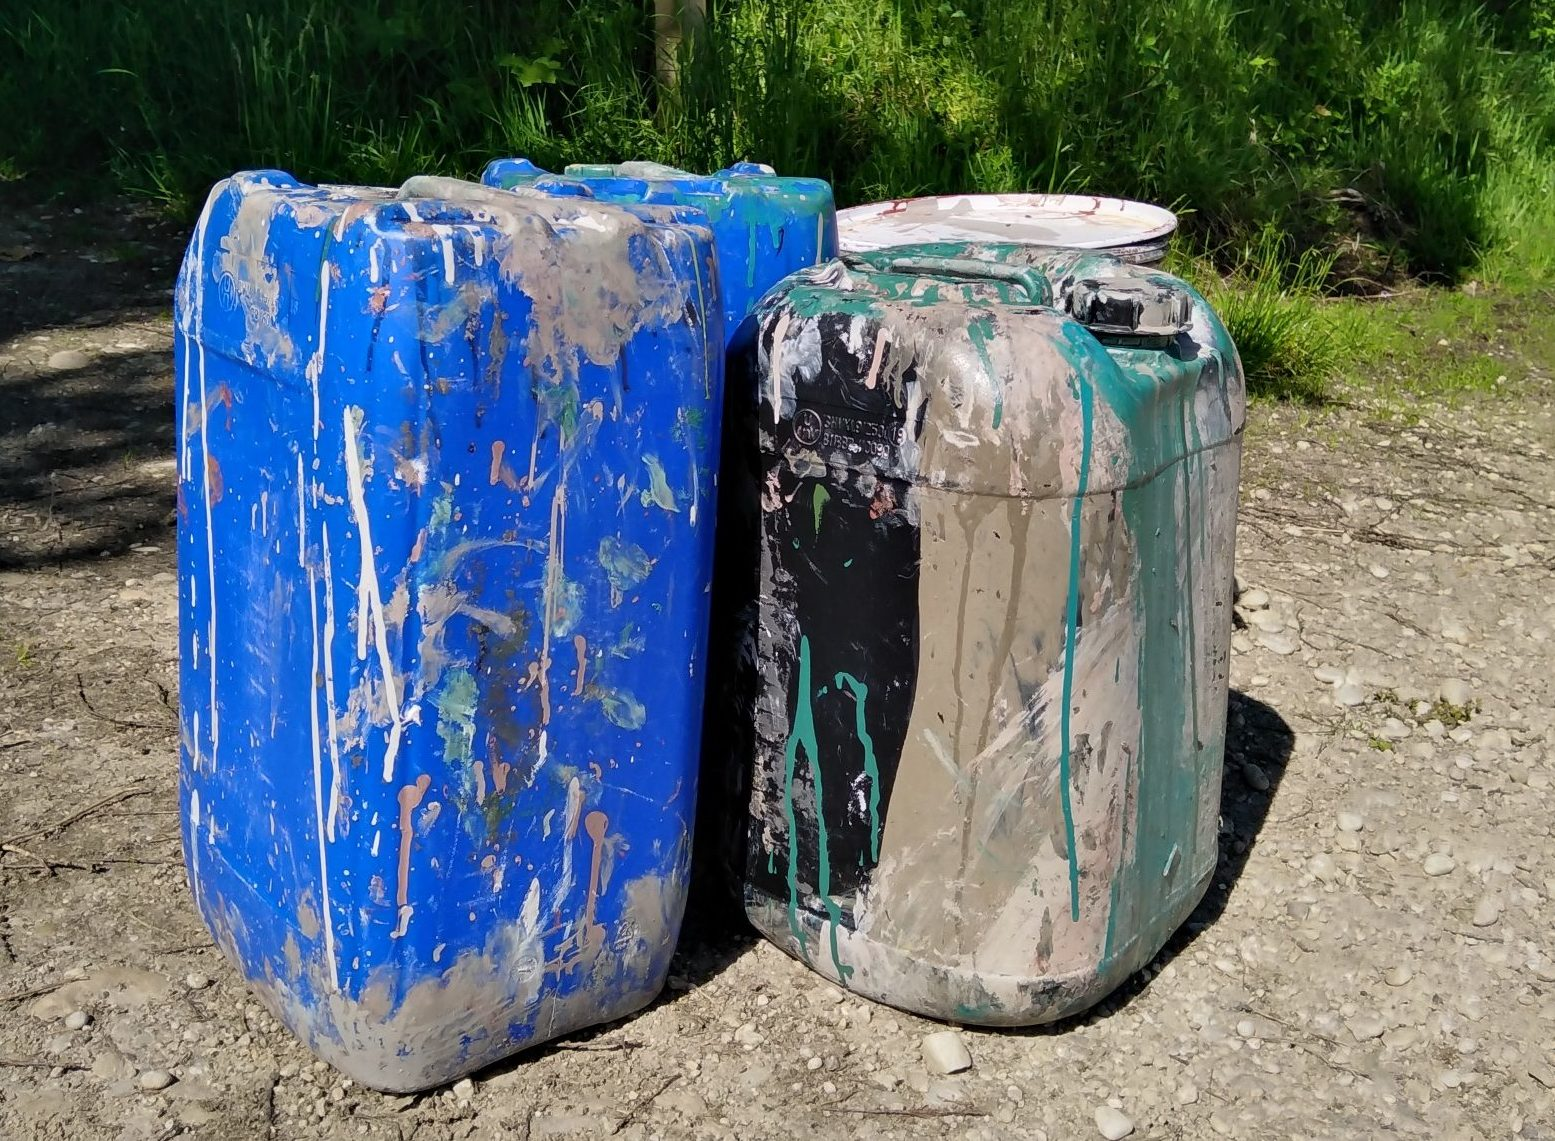 The four containers were left at the entrance area to a site of special scientific interest